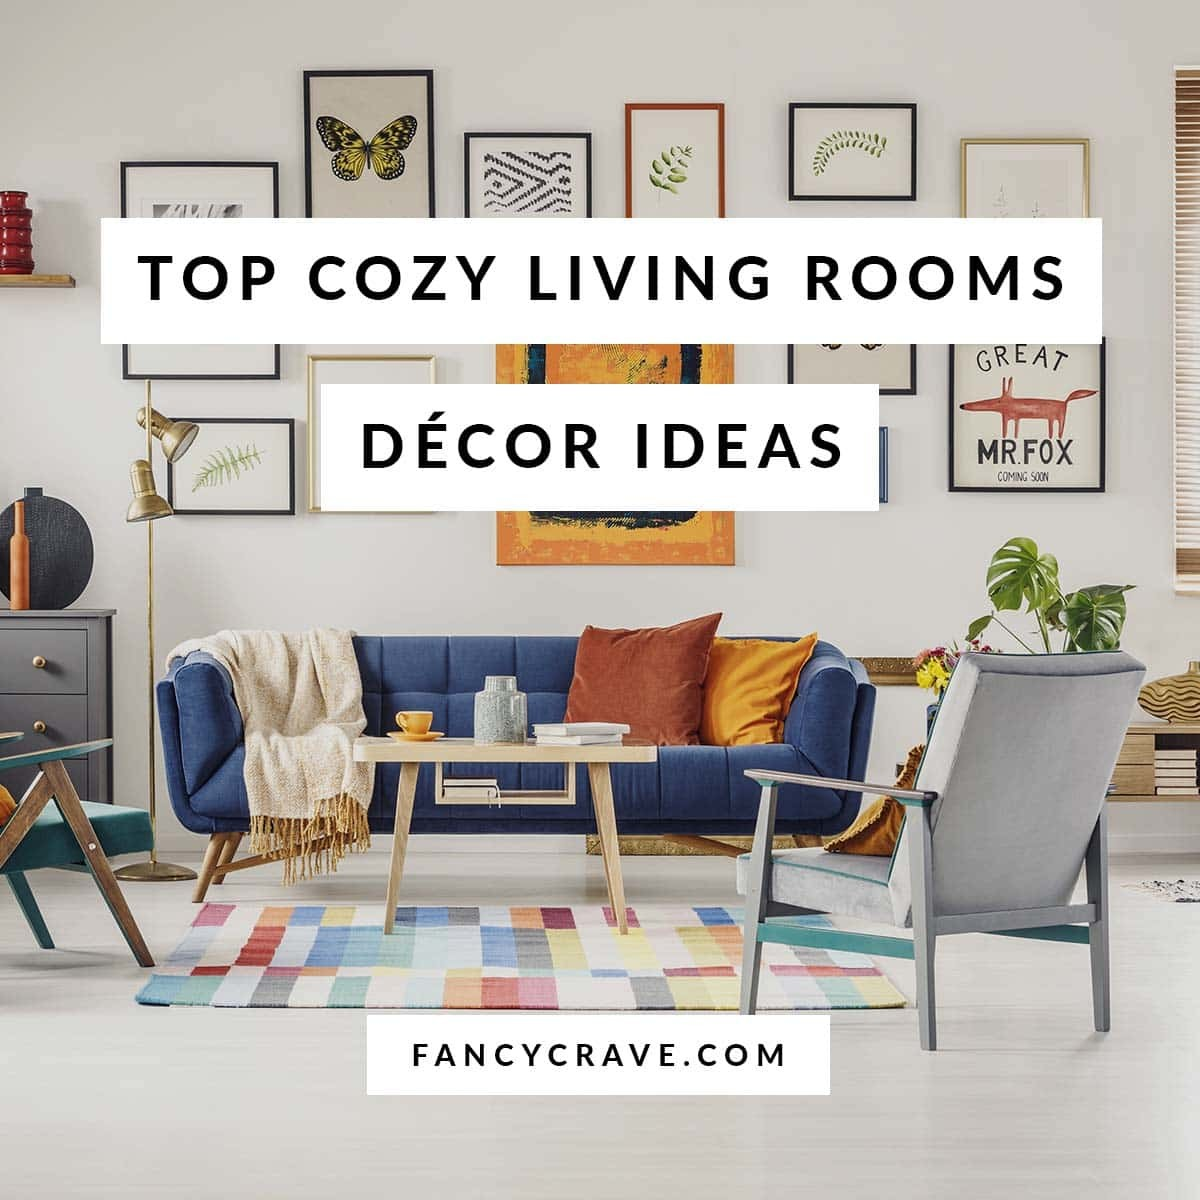 How To Turn Your Living Room Into A Cozy Area Fancycrave